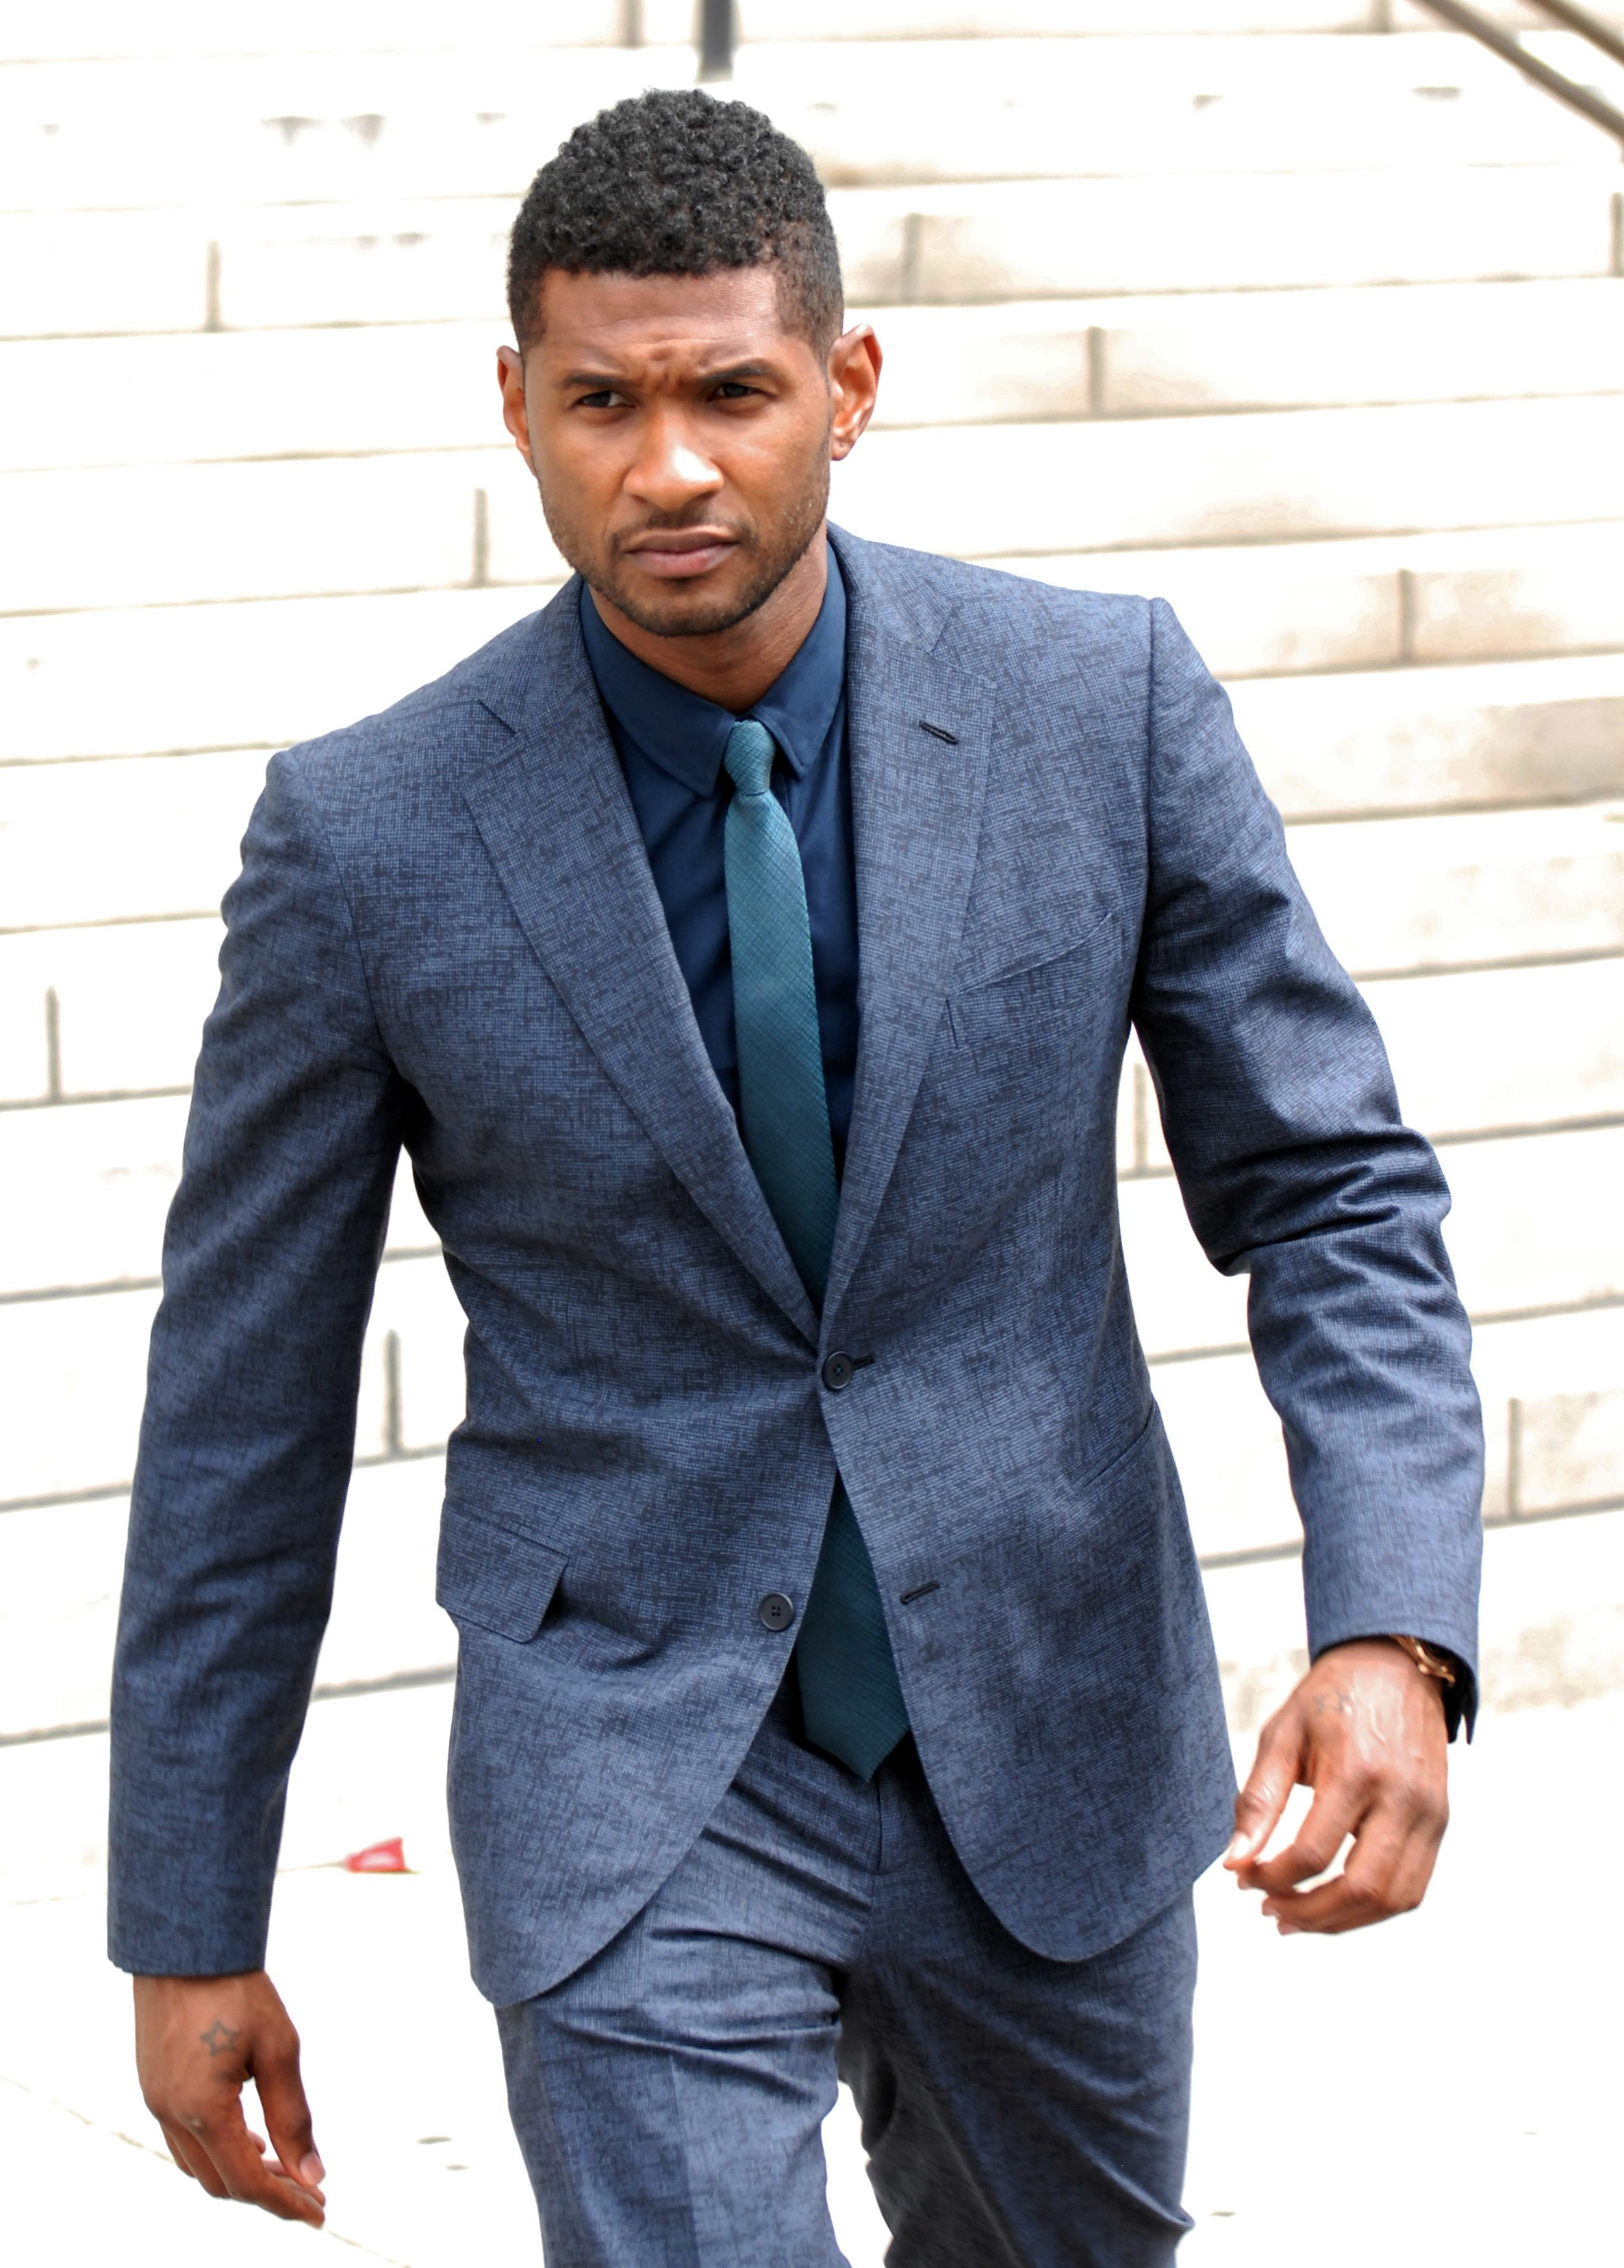 Usher Raymond attends a child custody meeting at Fulton County State Court on August 15, 2012 | Source: Getty Images